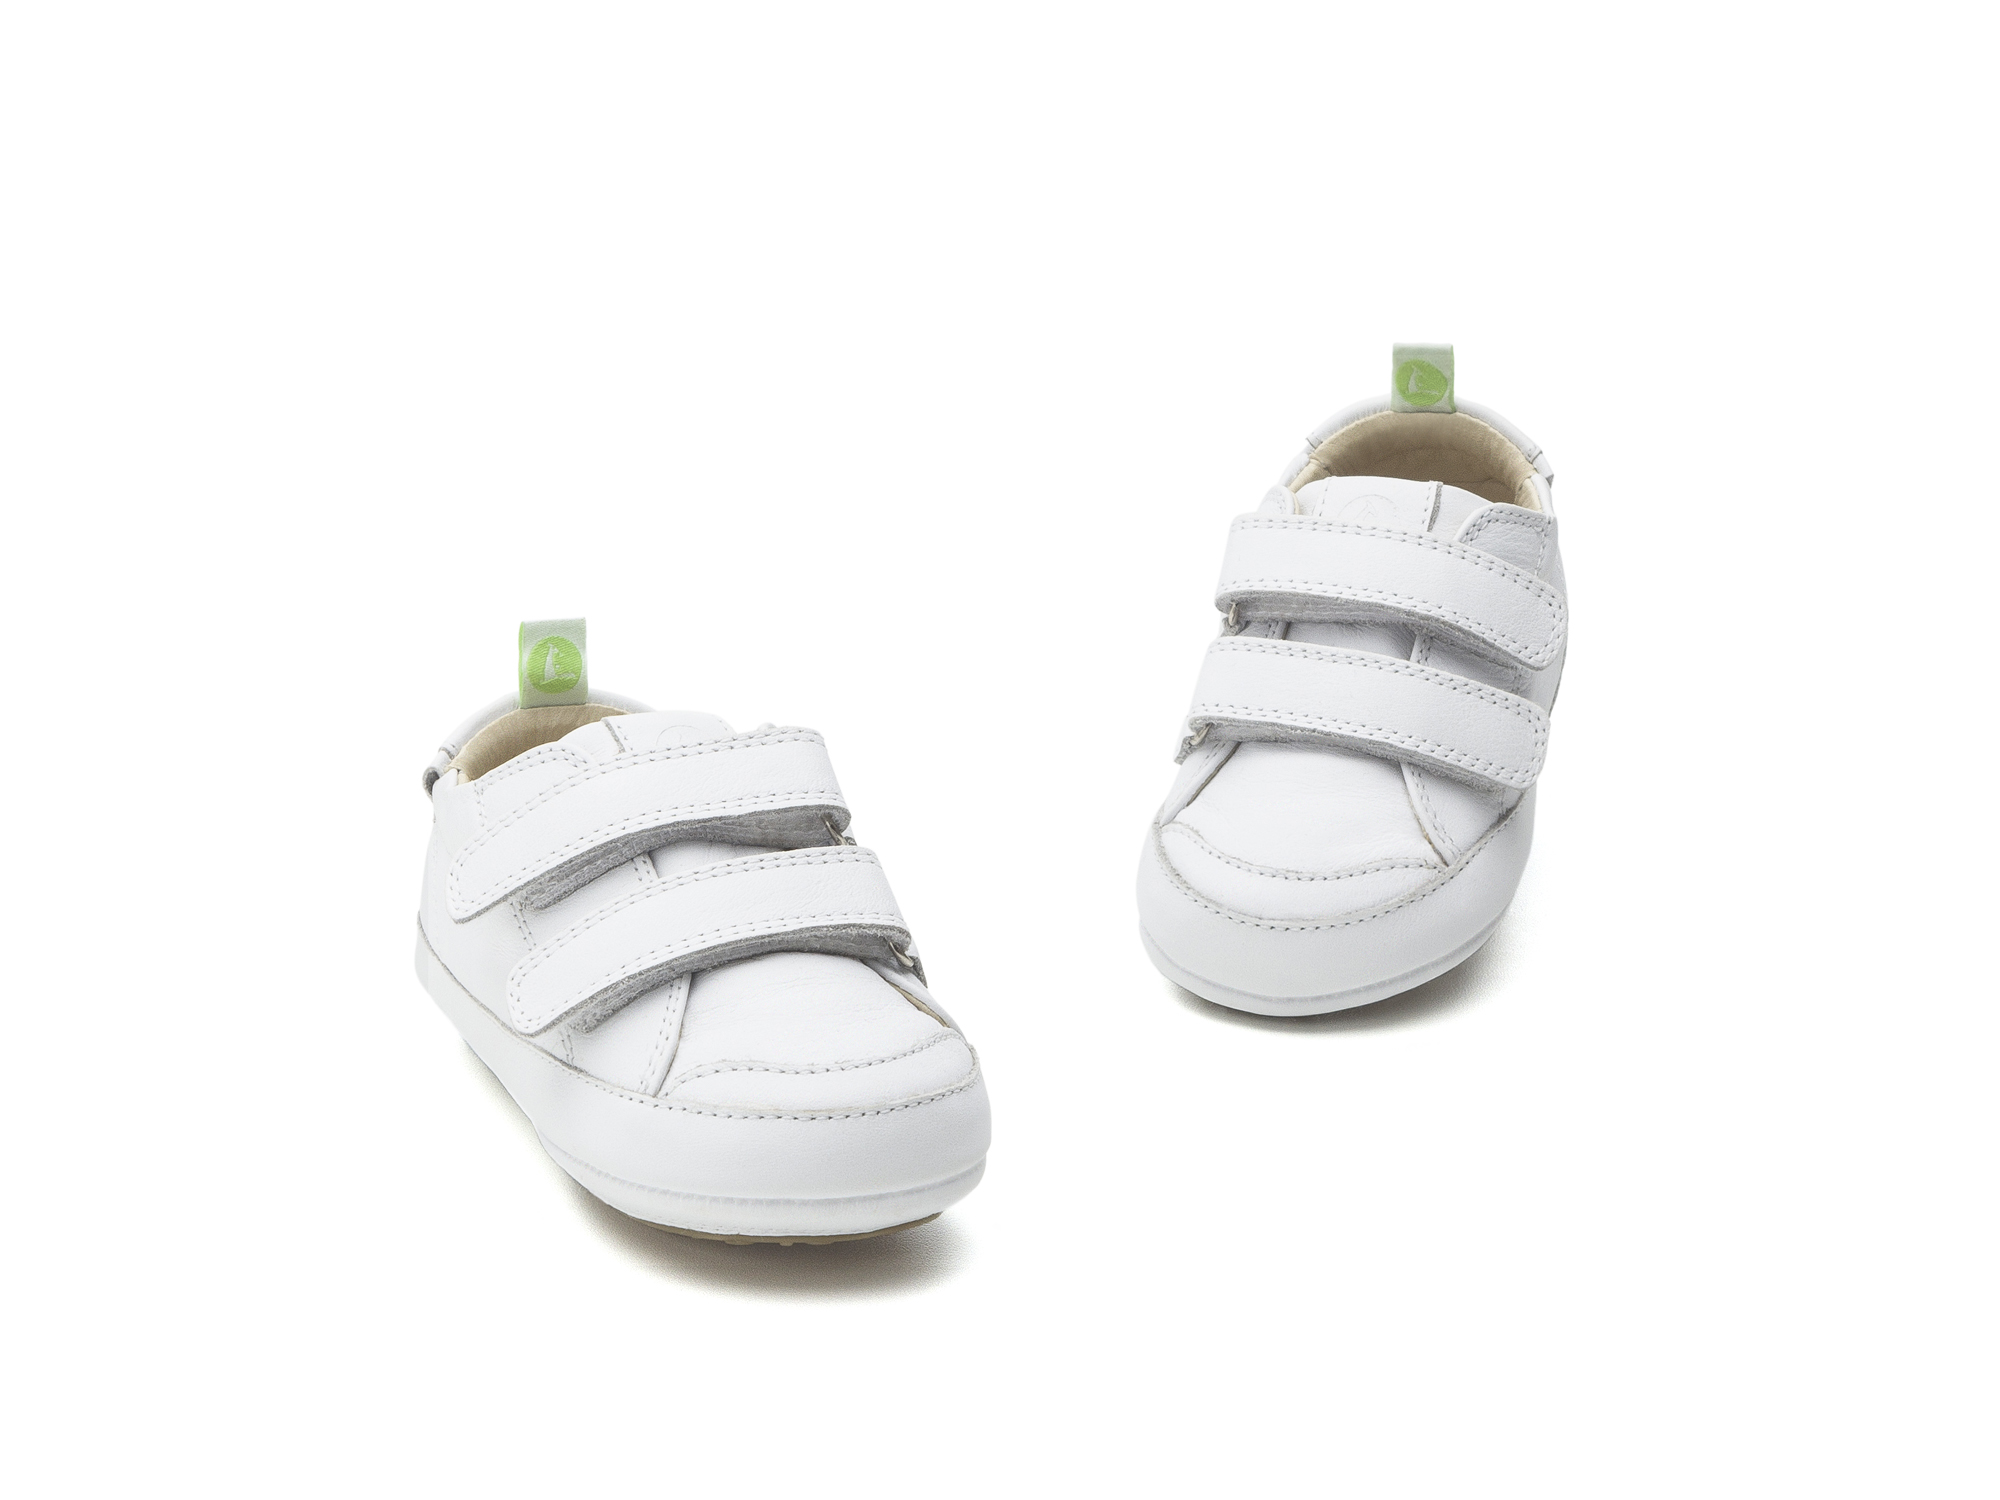 Tênis Bossy White/ White  Baby for ages 0 to 2 years - 2